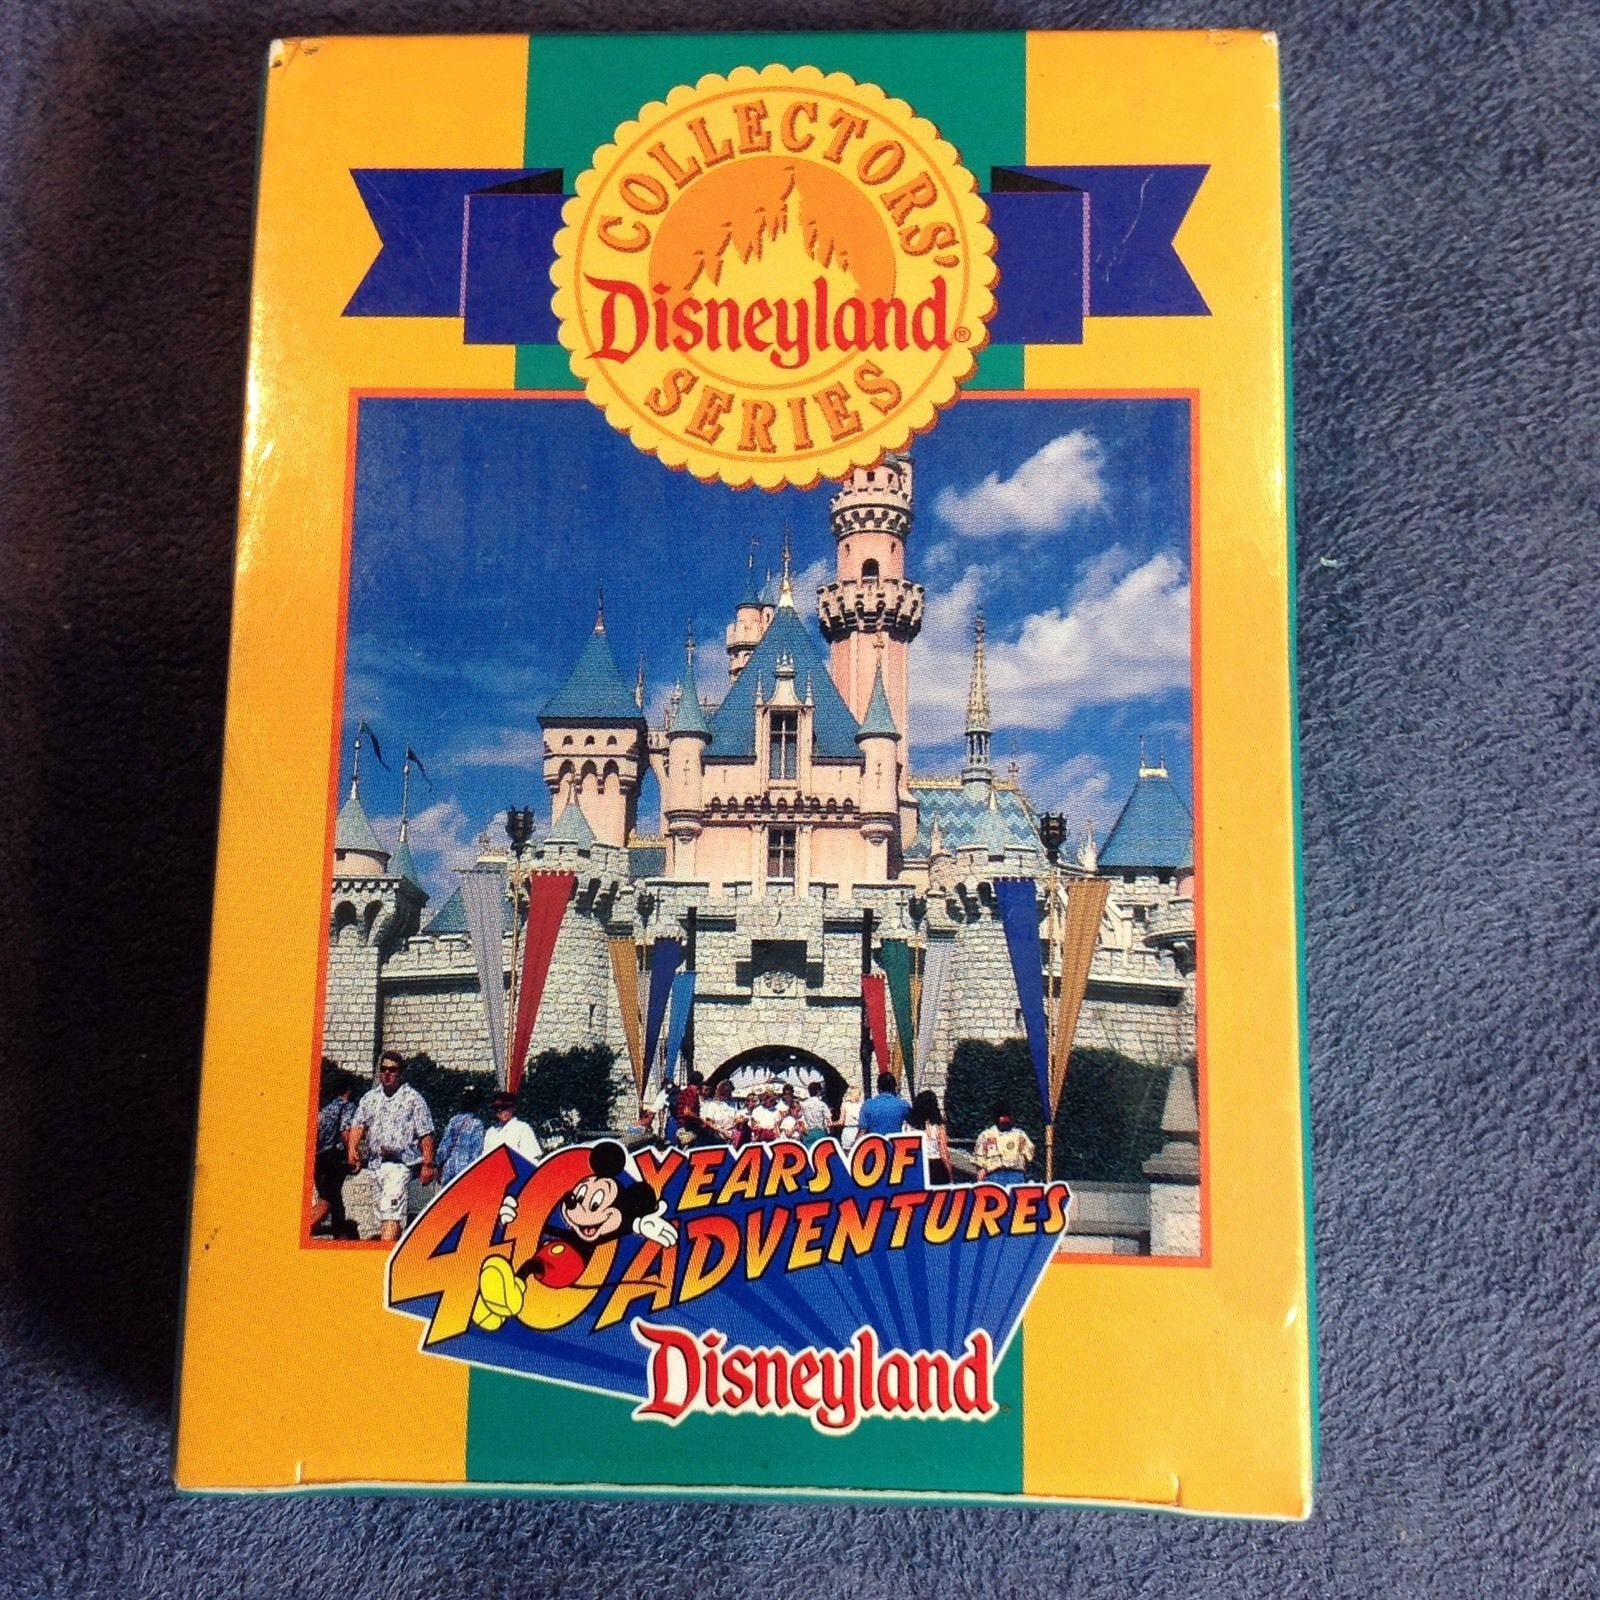 Collectors' Disneyland Series 40 Years of Adventure Trading Cards Deck New Rare